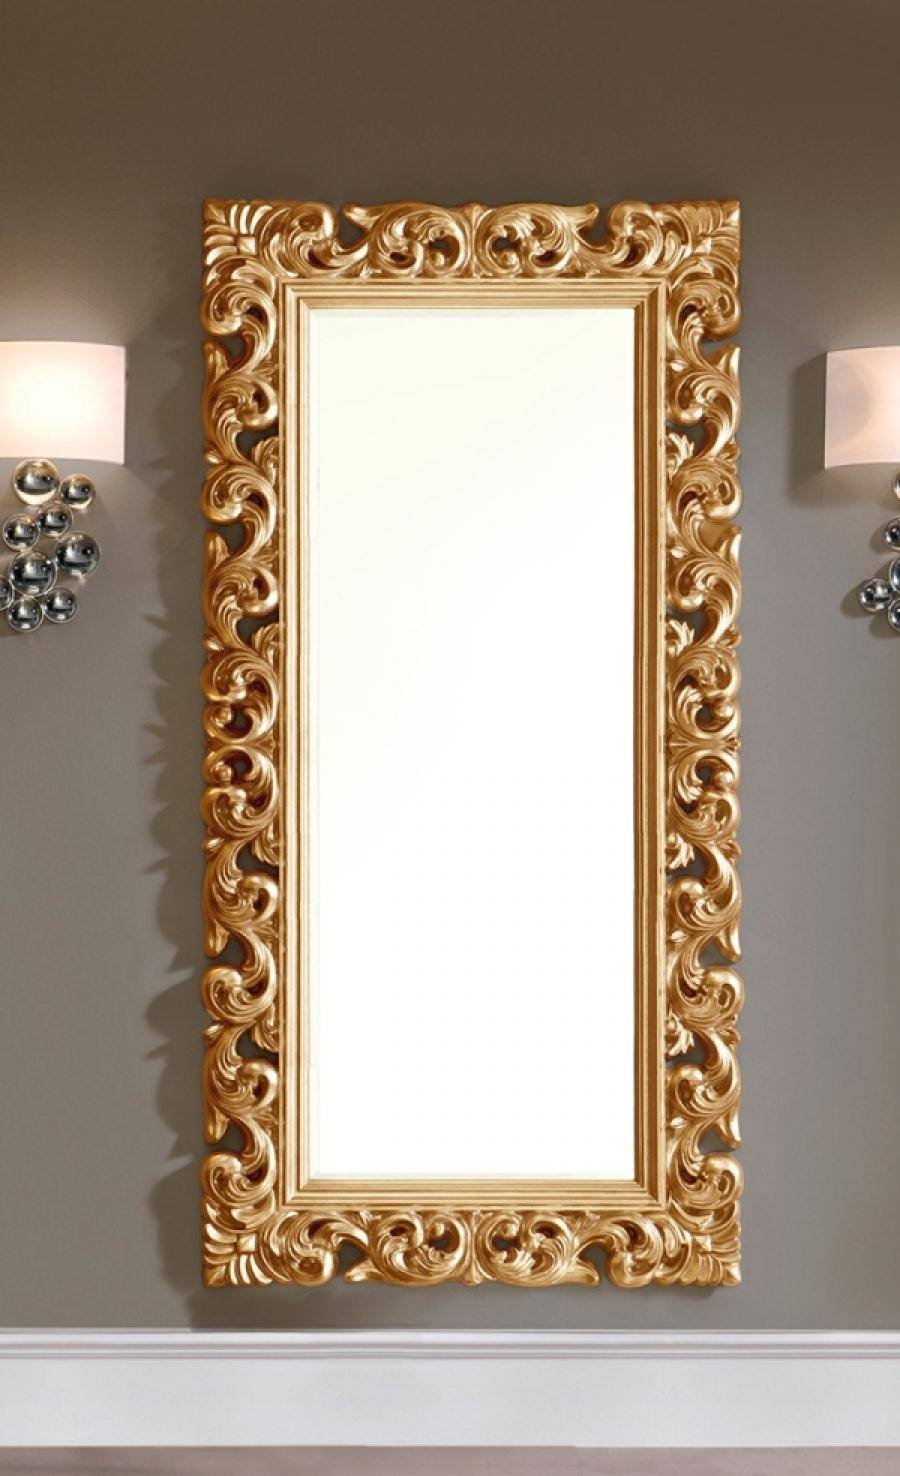 Large Modern Ornate Mirror In Gold Colour Finish Intended For Large Gold Ornate Mirrors (View 8 of 15)